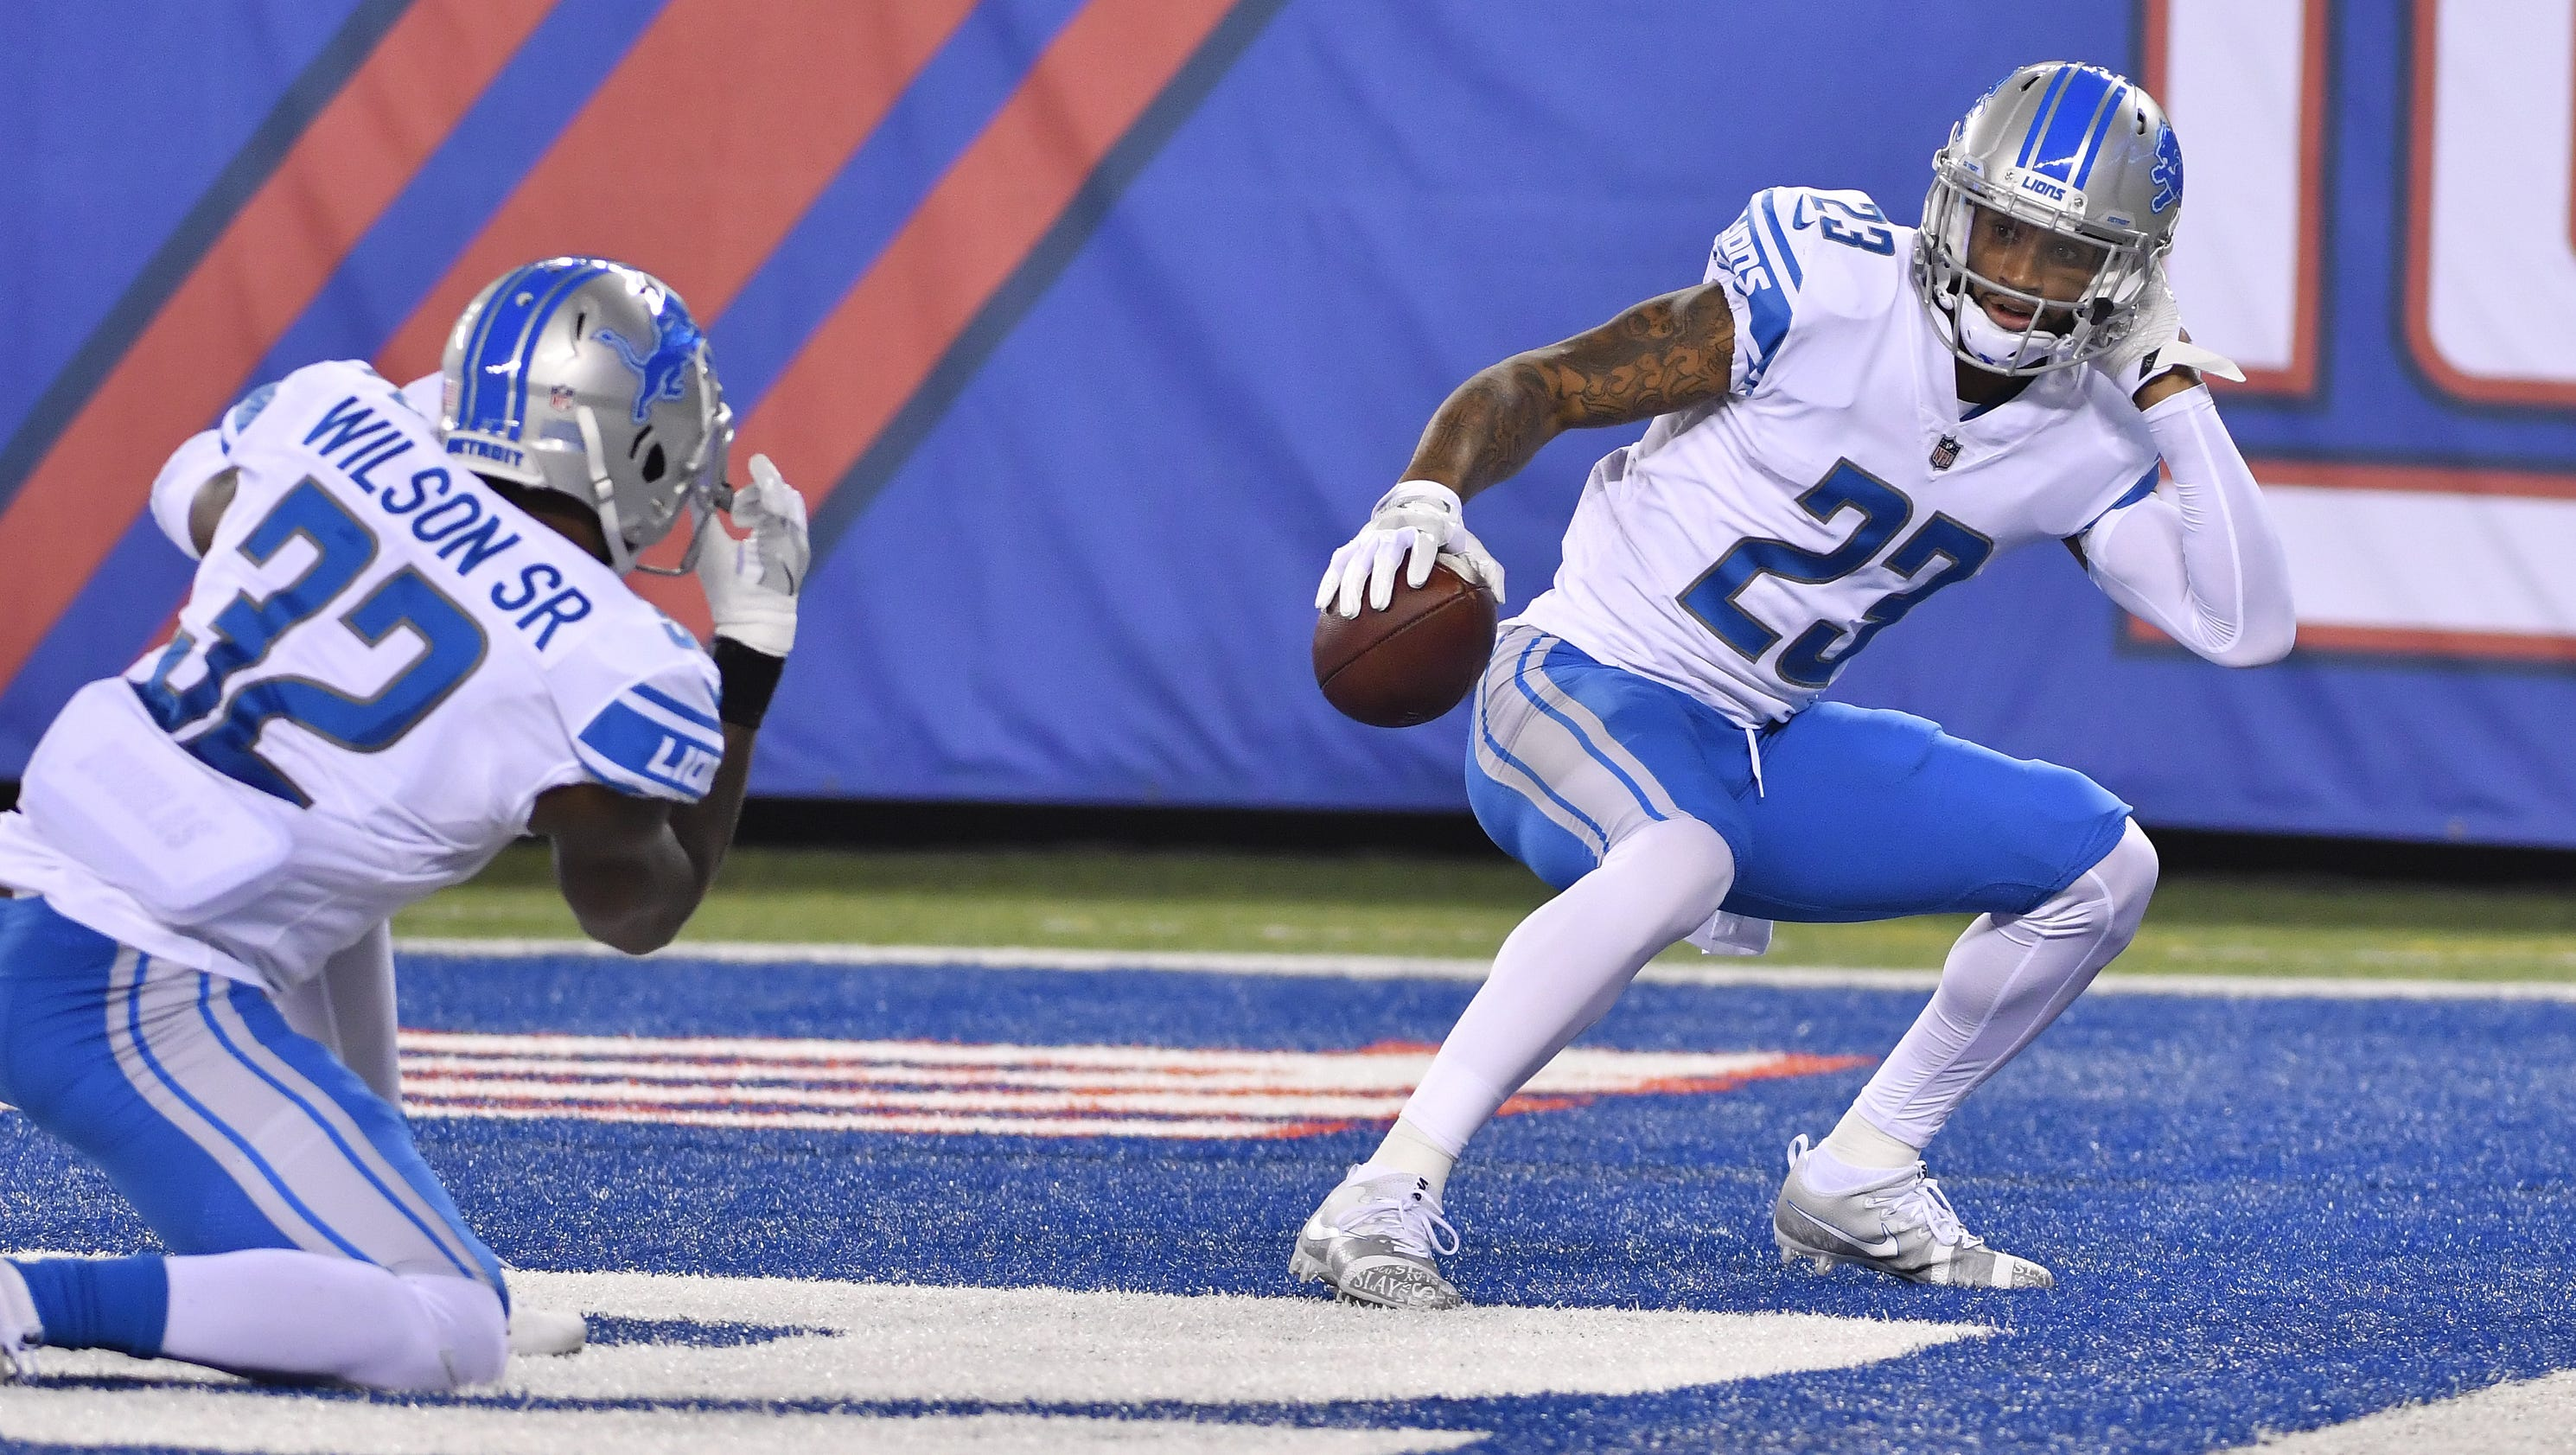 No fear Lions Darius Slay is risk taker playmaker star